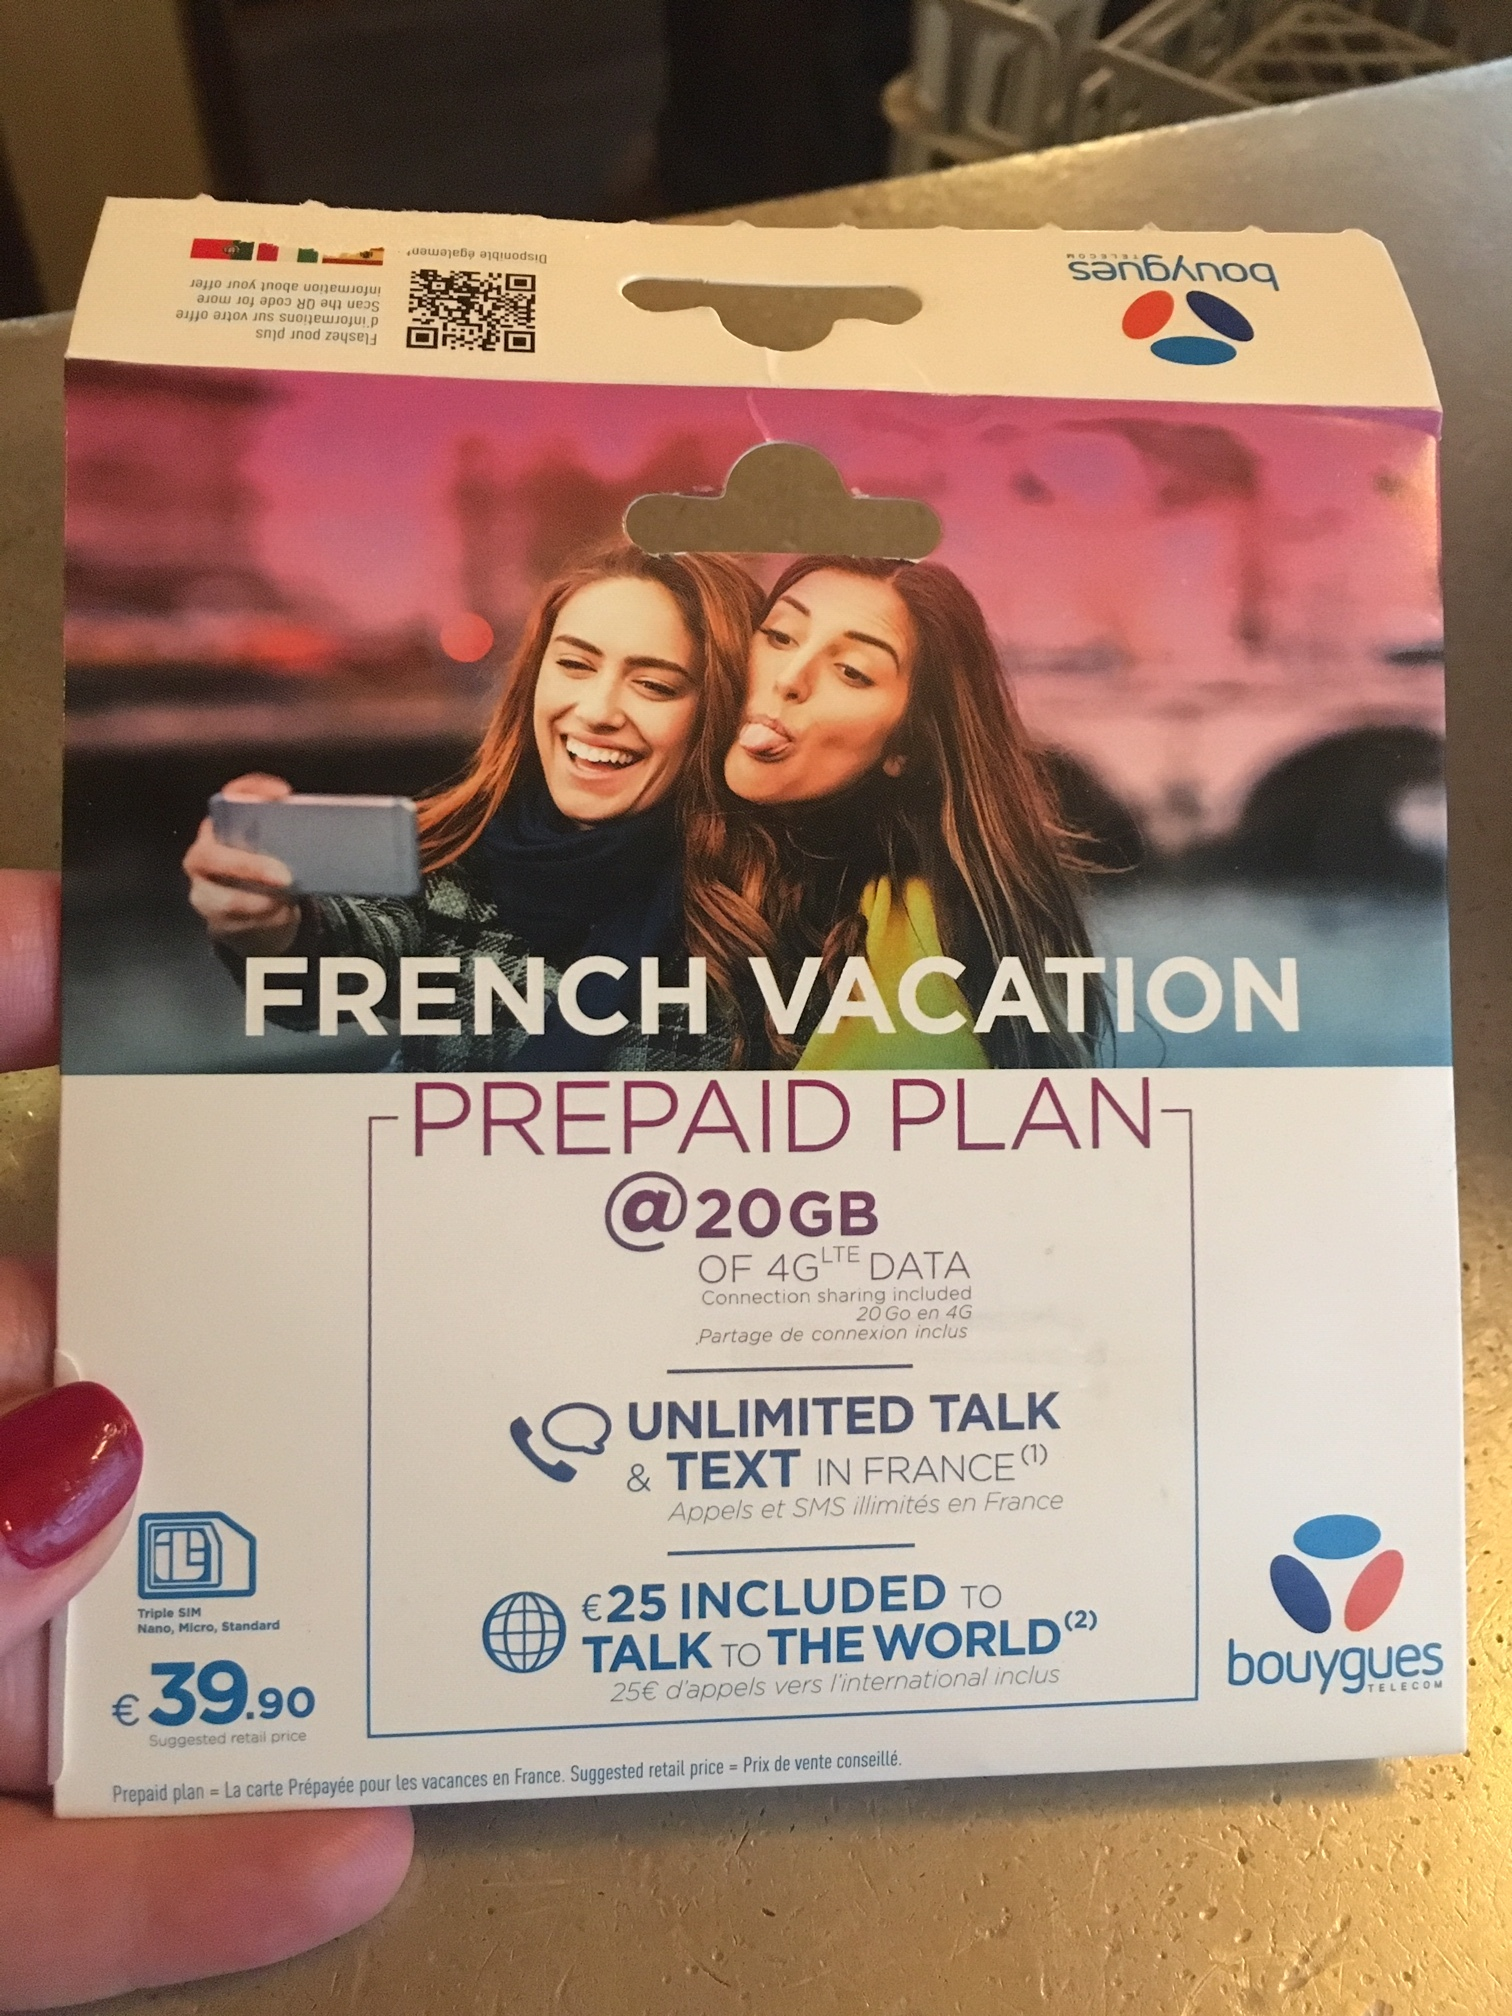 sim card in France 40 euros prepaid plan